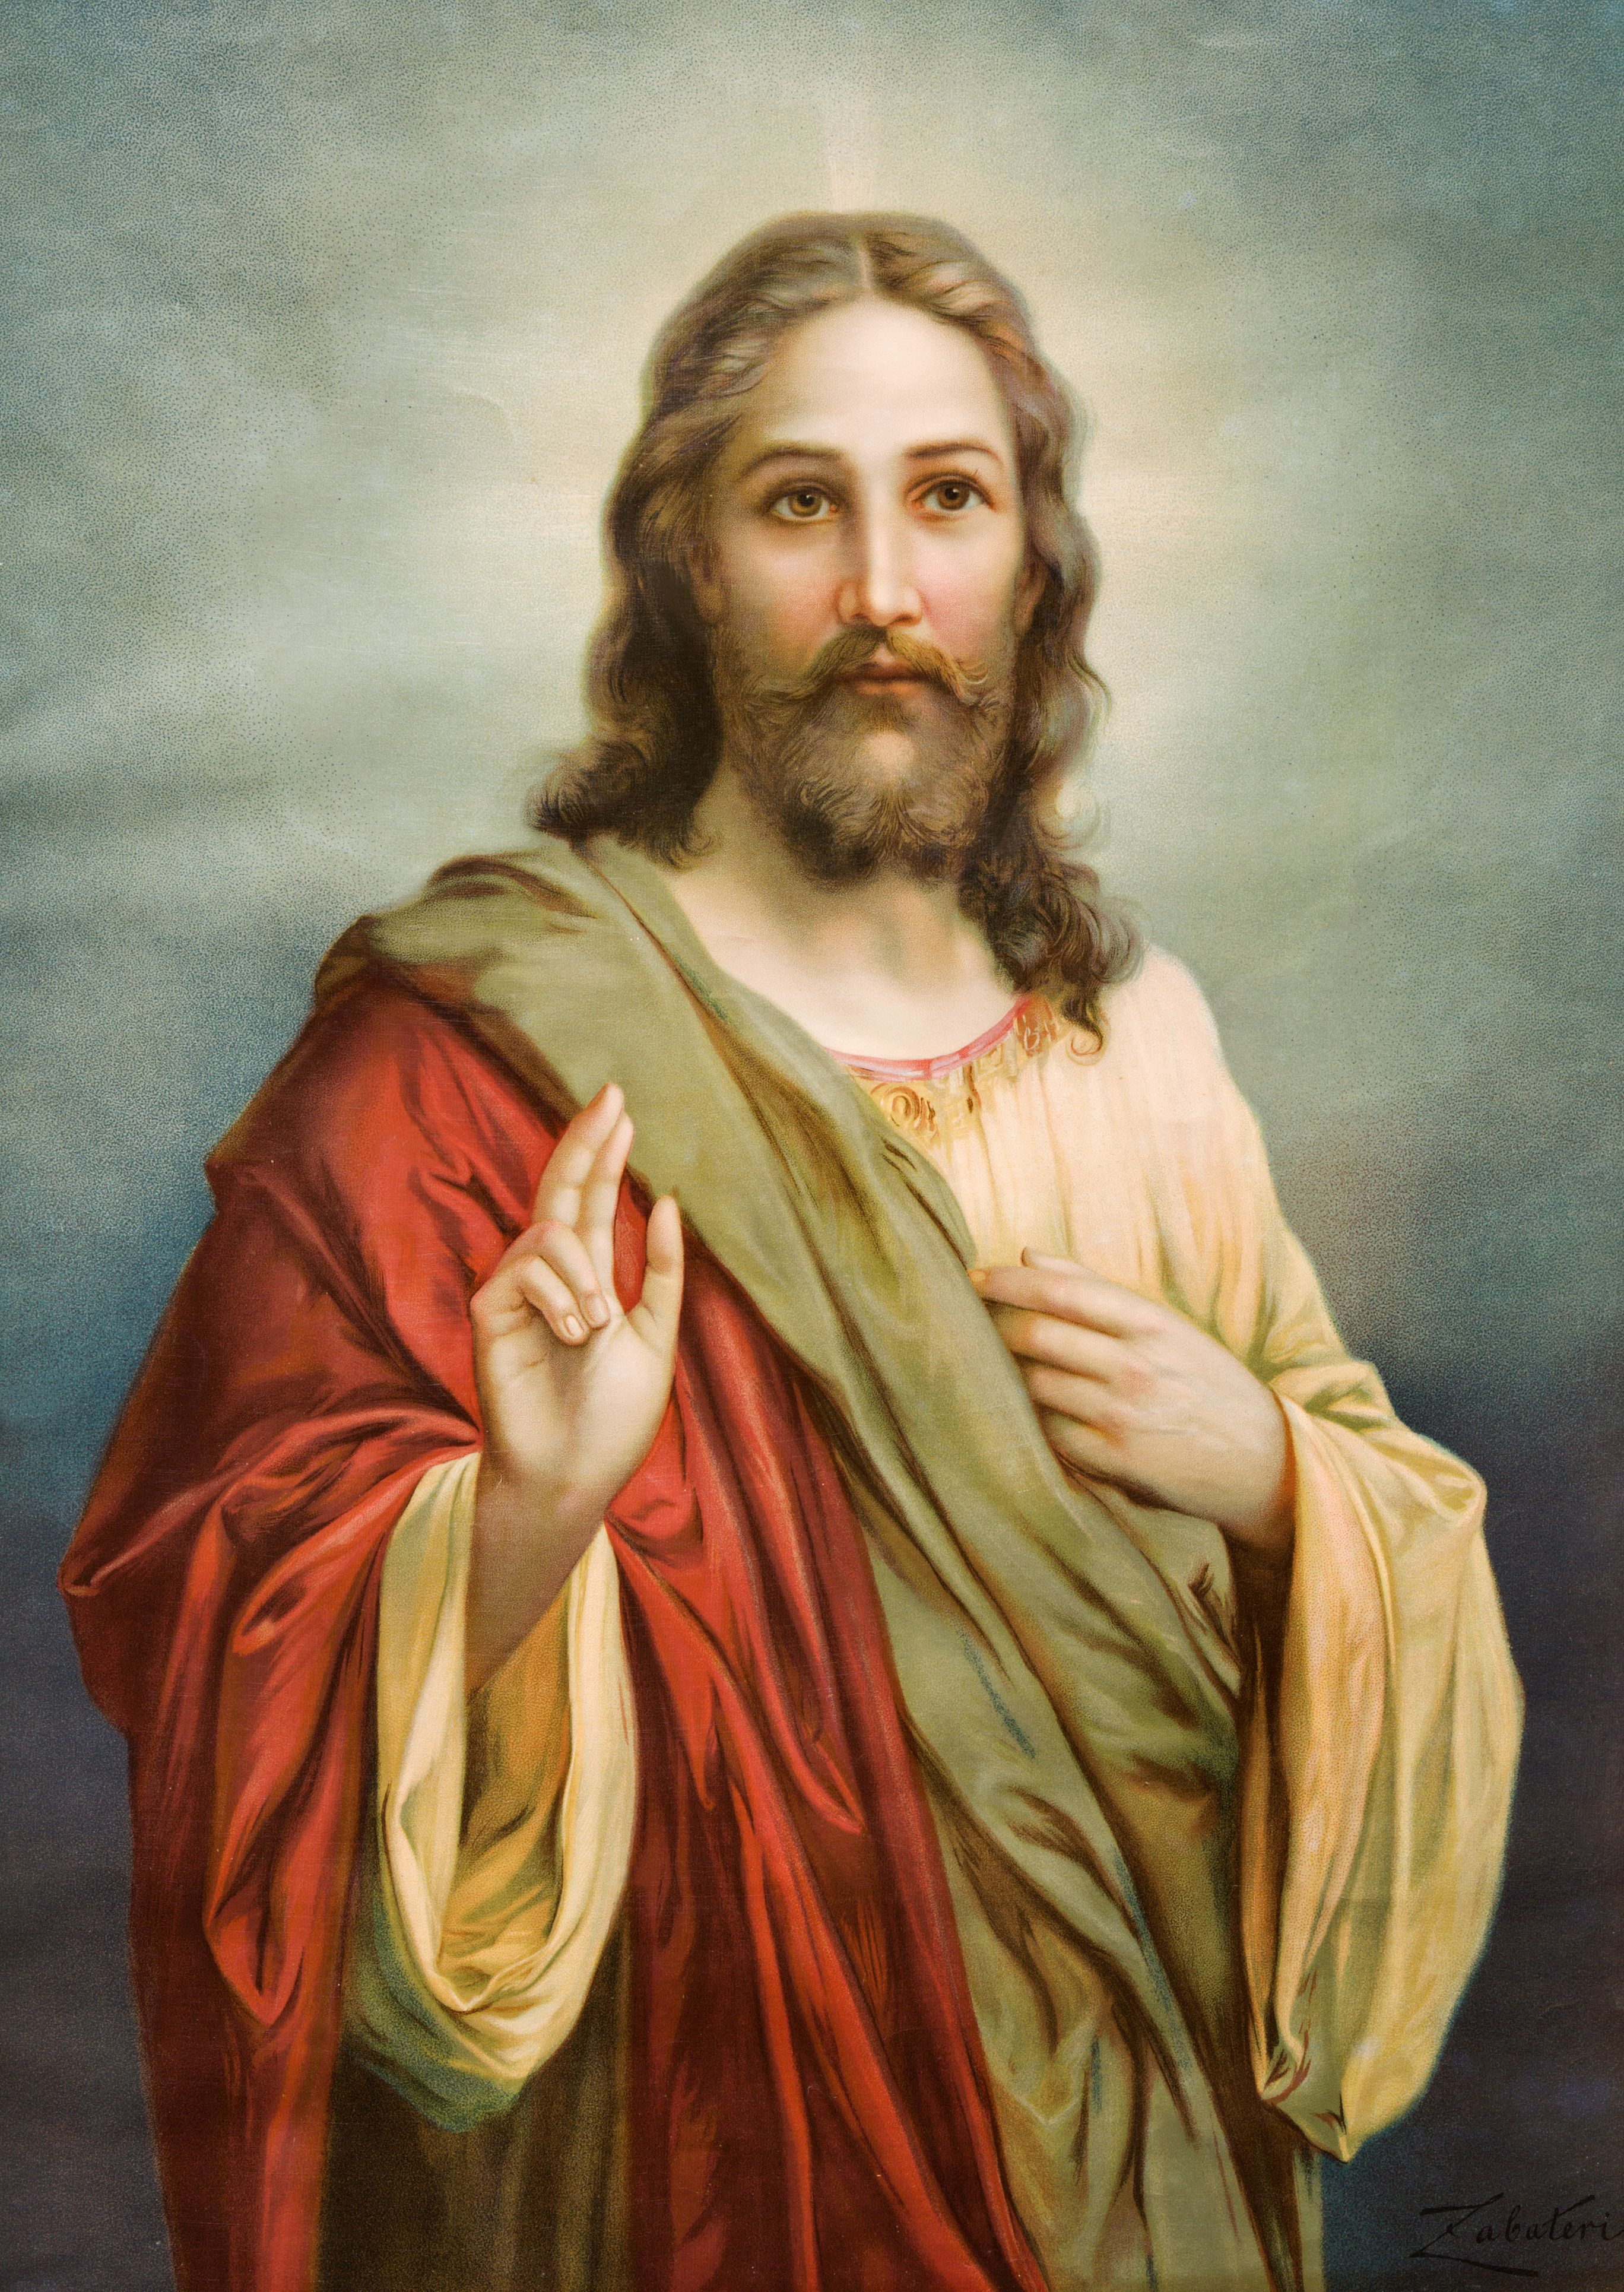 Free Download Jesus Christ Hd Wallpapers Download Jesus Christ Tumblr 2736x3861 For Your Desktop Mobile Tablet Explore 73 Free Christian Hd Wallpapers Spiritual Hd Wallpapers Hd Christian Wallpaper Widescreen